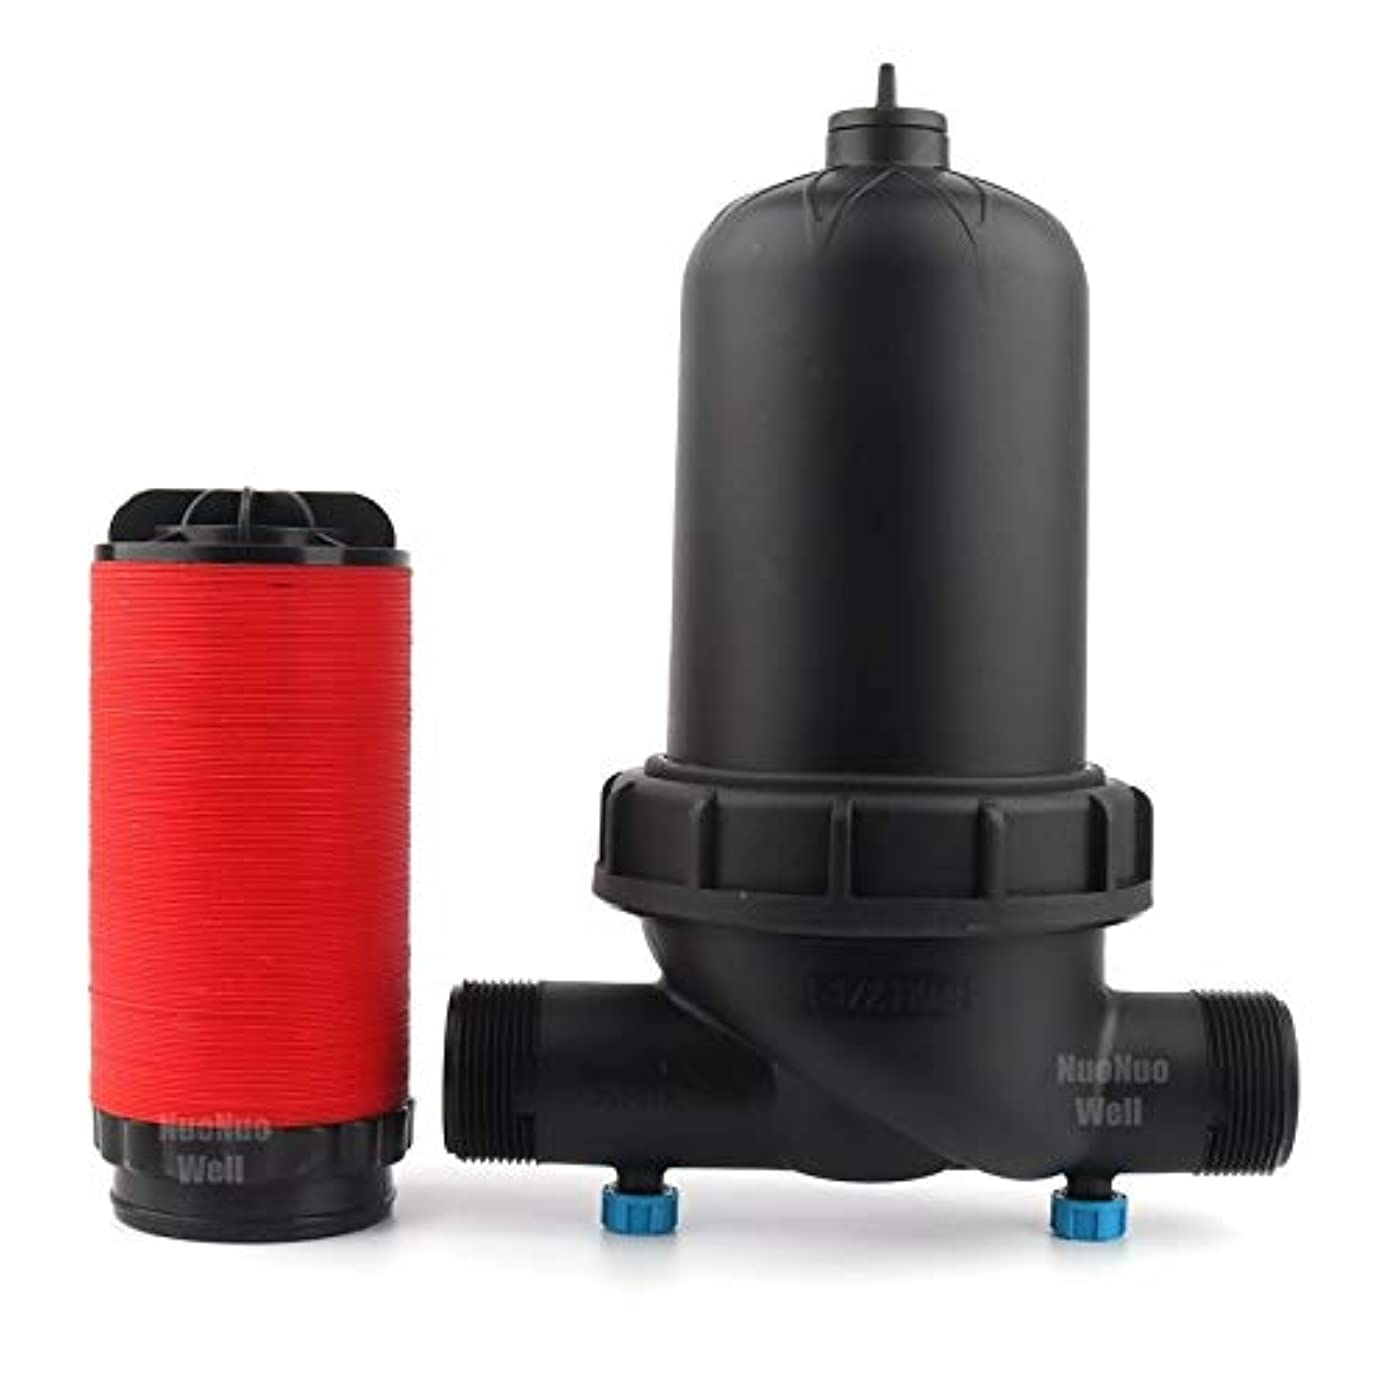 Filter Laminated | Industrial Garden Irrigation Pump Water Treatment Filter | Fountain Cyclic Filtration